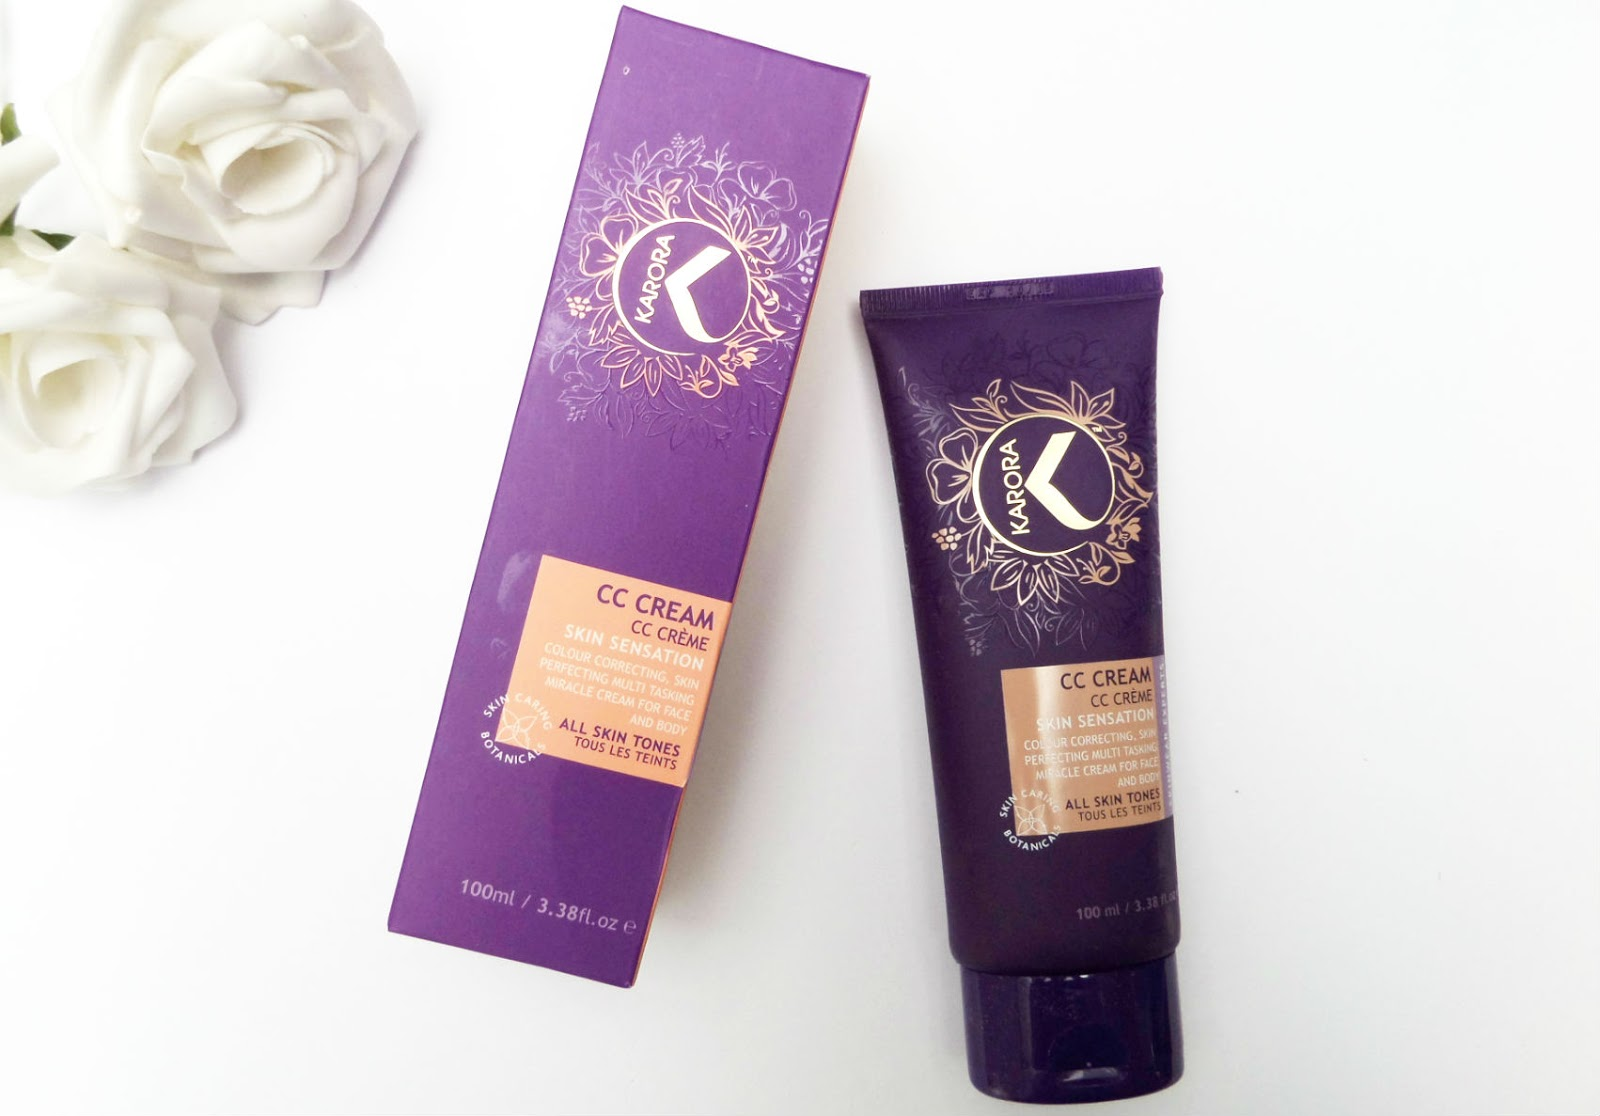 Karora Cosmetics Face And Body CC Cream Review